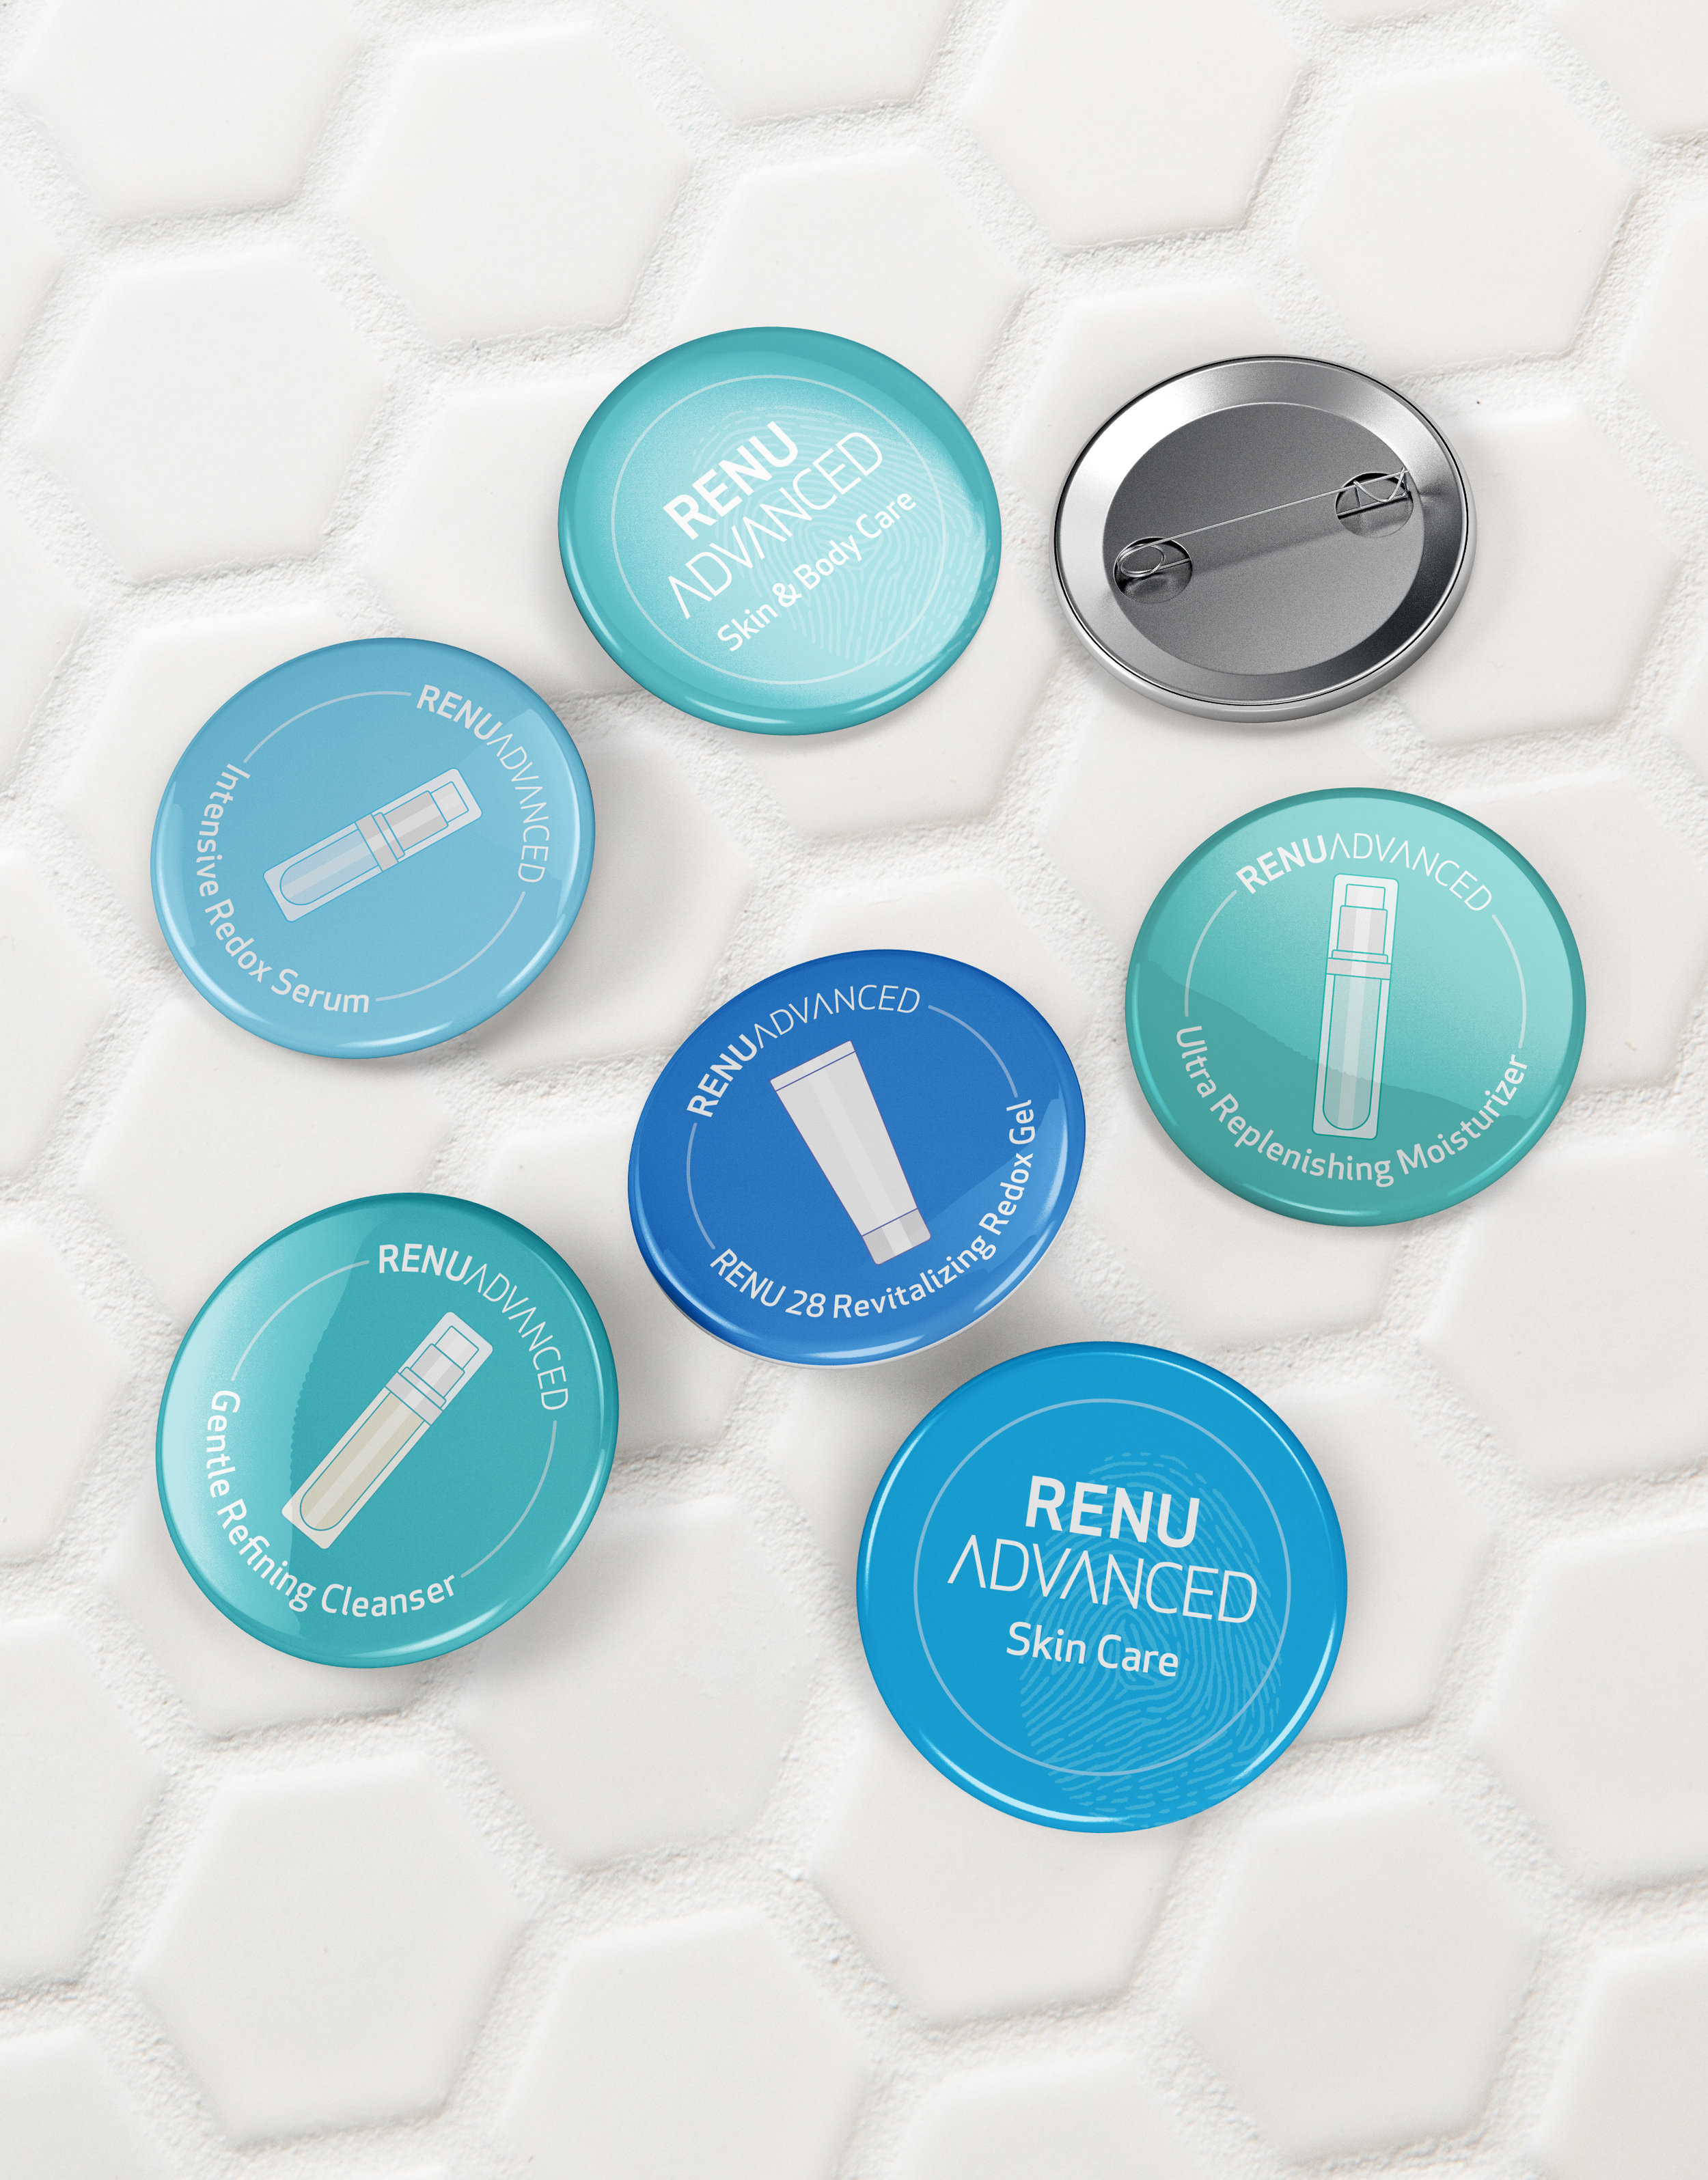 Skincare Buttons.jpg